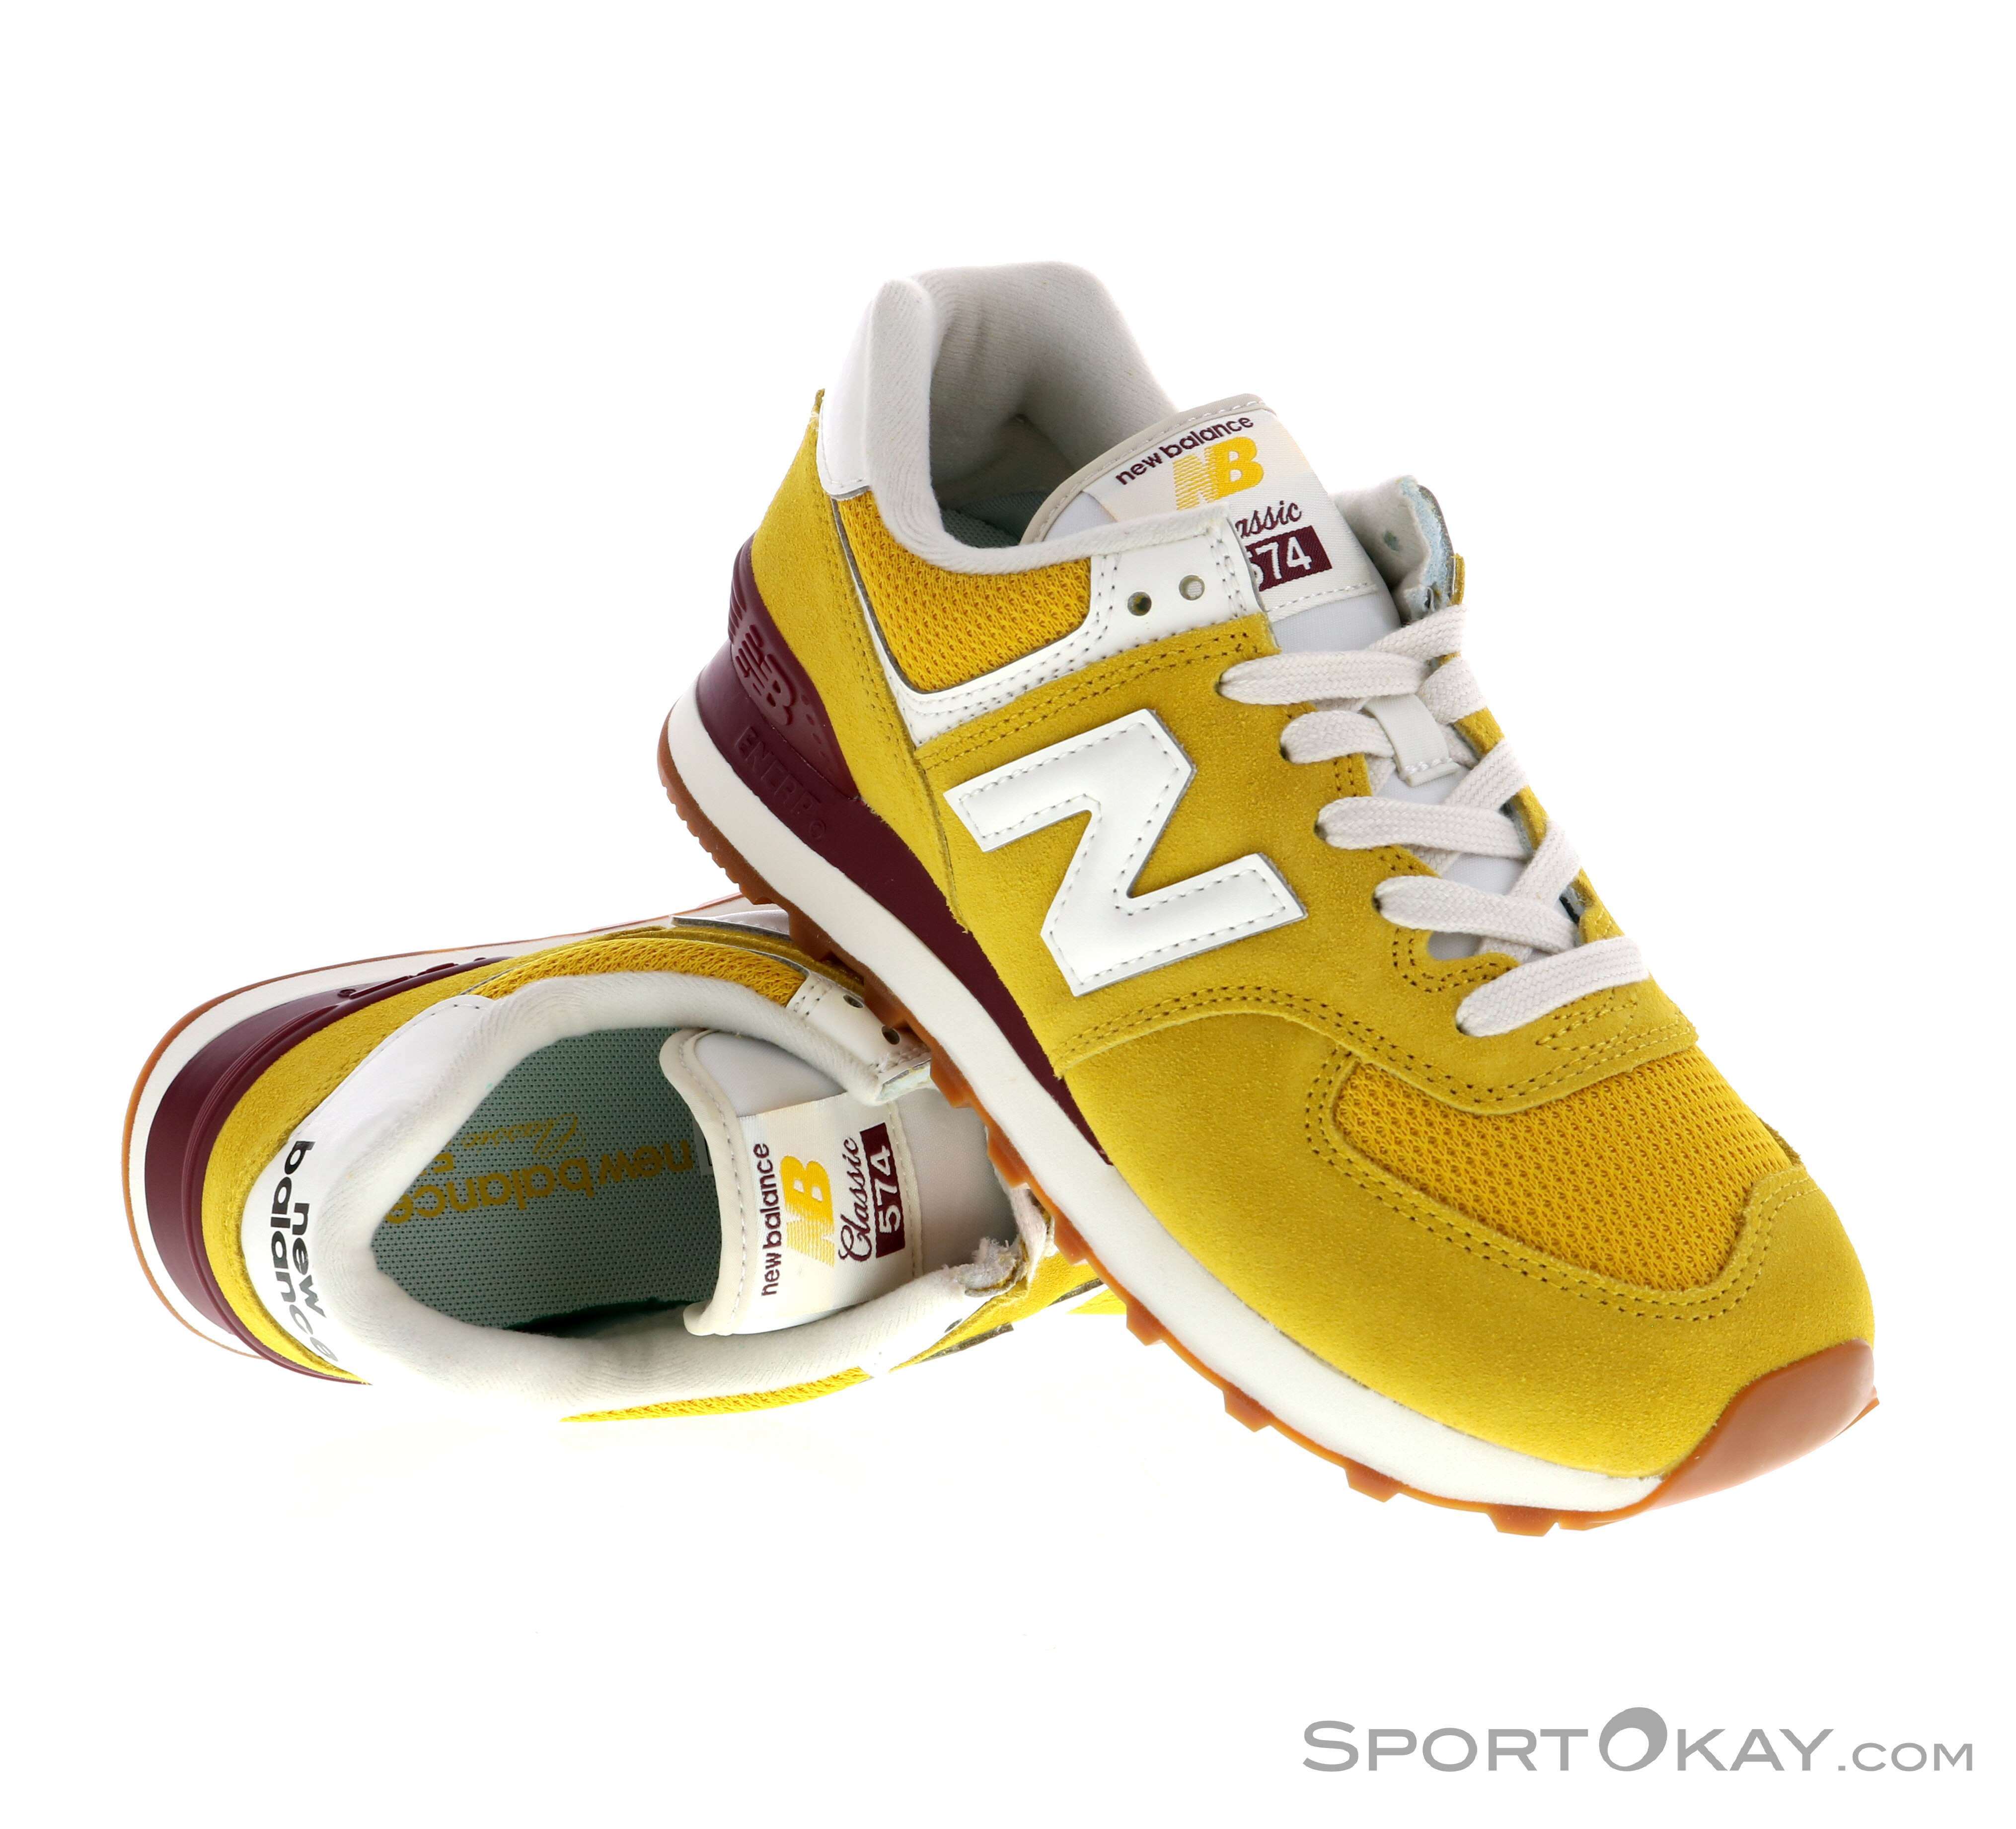 New Balance 574 Womens Leisure Shoes - Leisure Shoes - Shoes ...